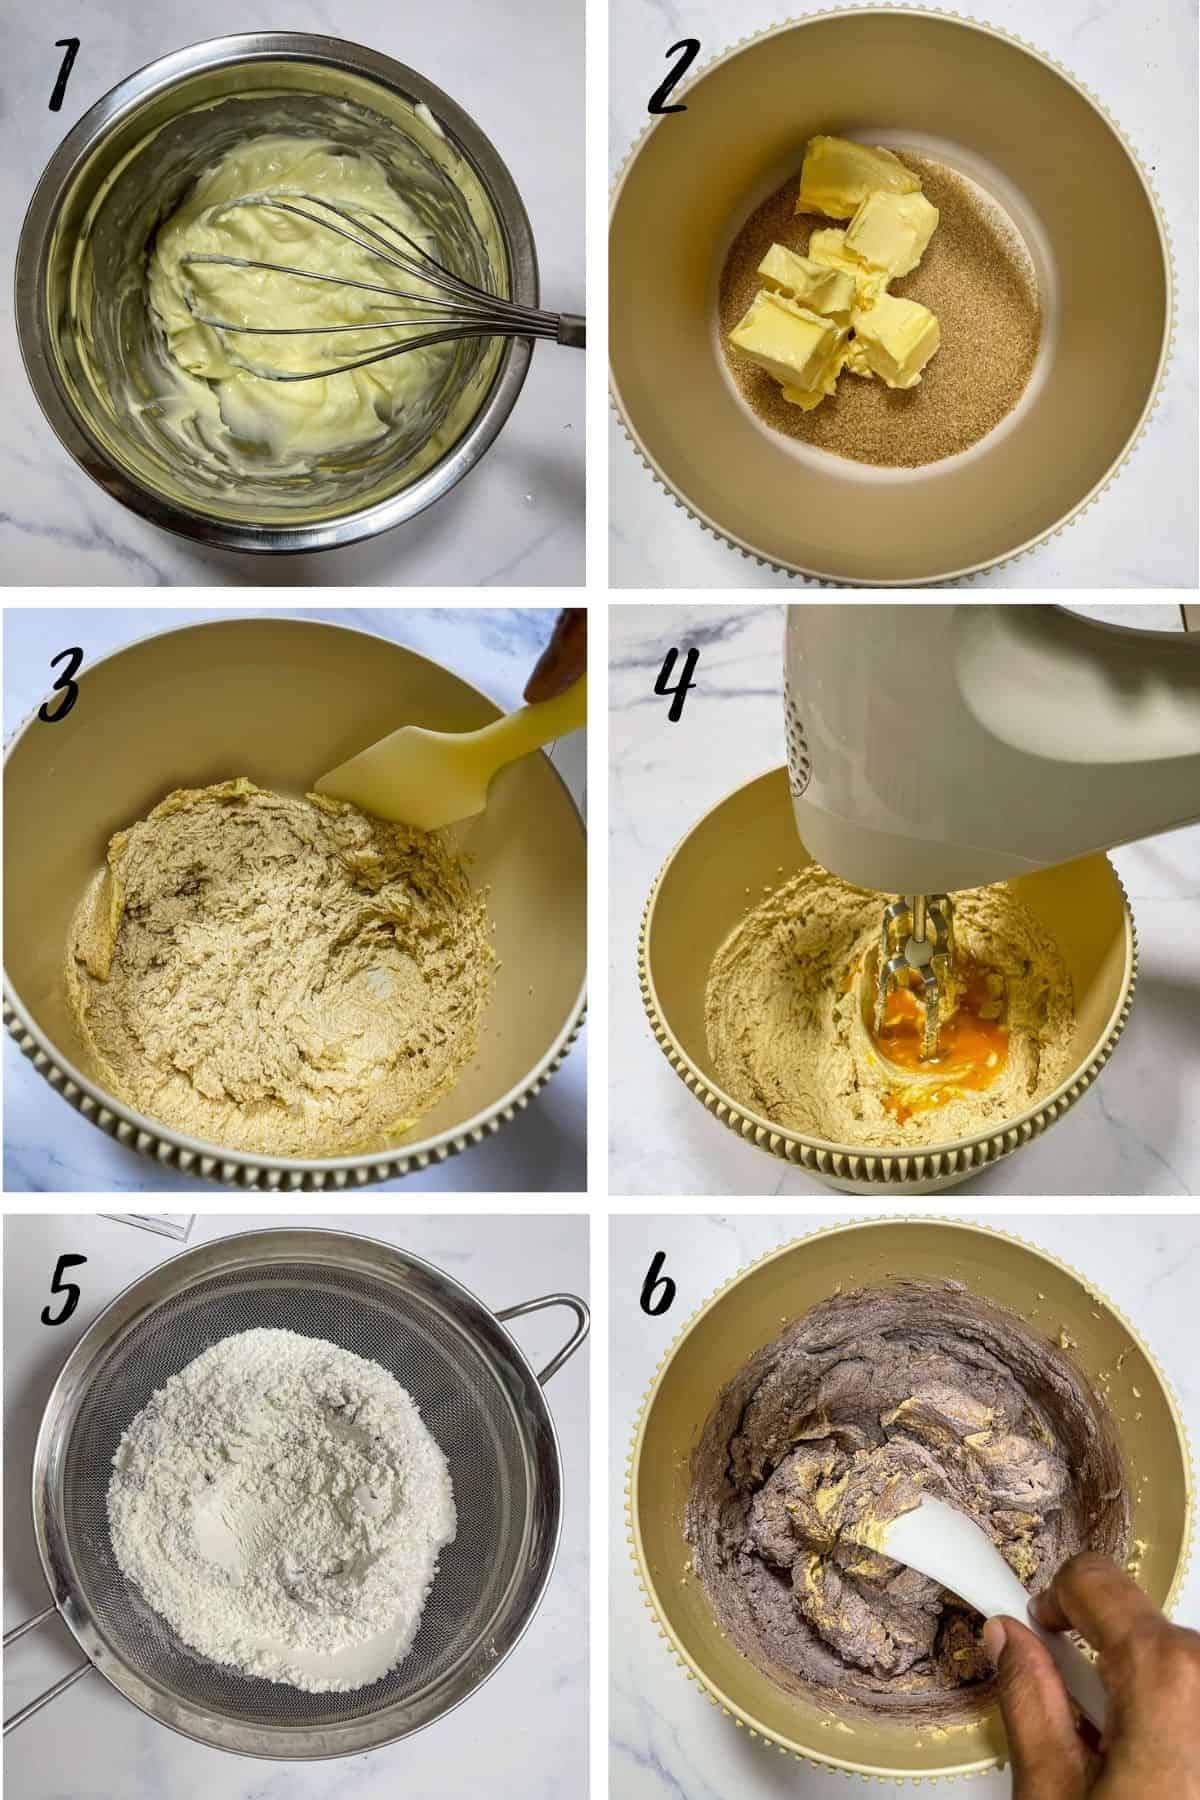 A poster of 6 images showing how to mix chocolate cake batter